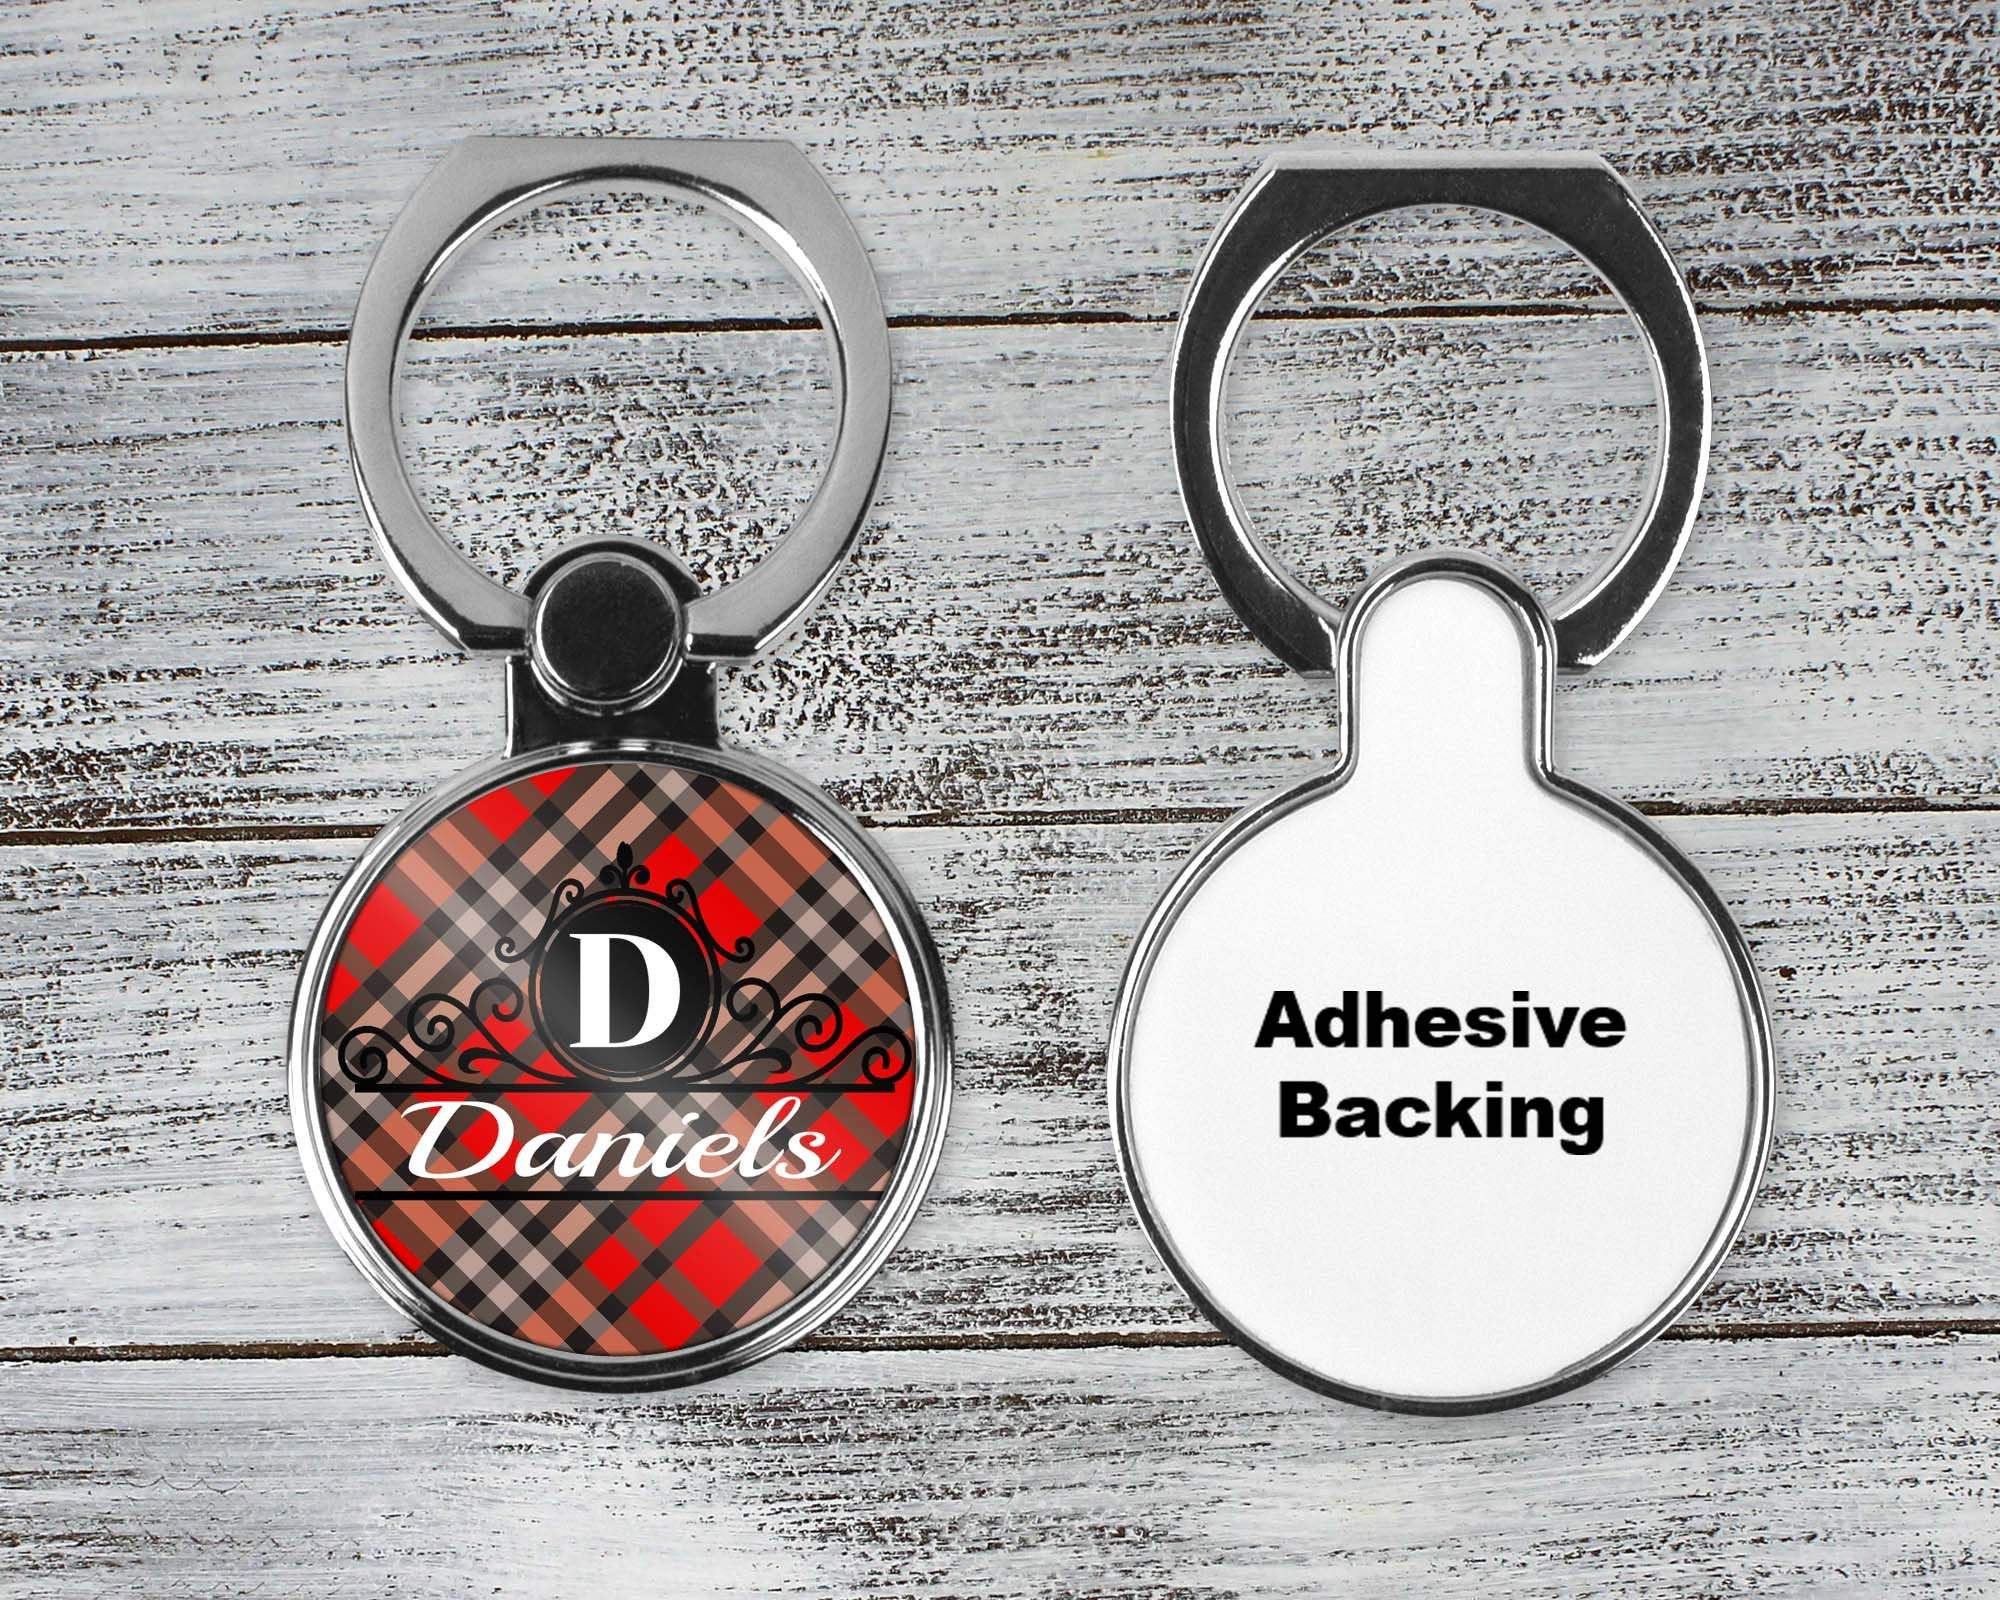 Phone Cases | Personalized Phone Ring Stand | Monogram Cell Phone Grip | Red and Black Plaid | This and That Solutions | Personalized Gifts | Custom Home Décor